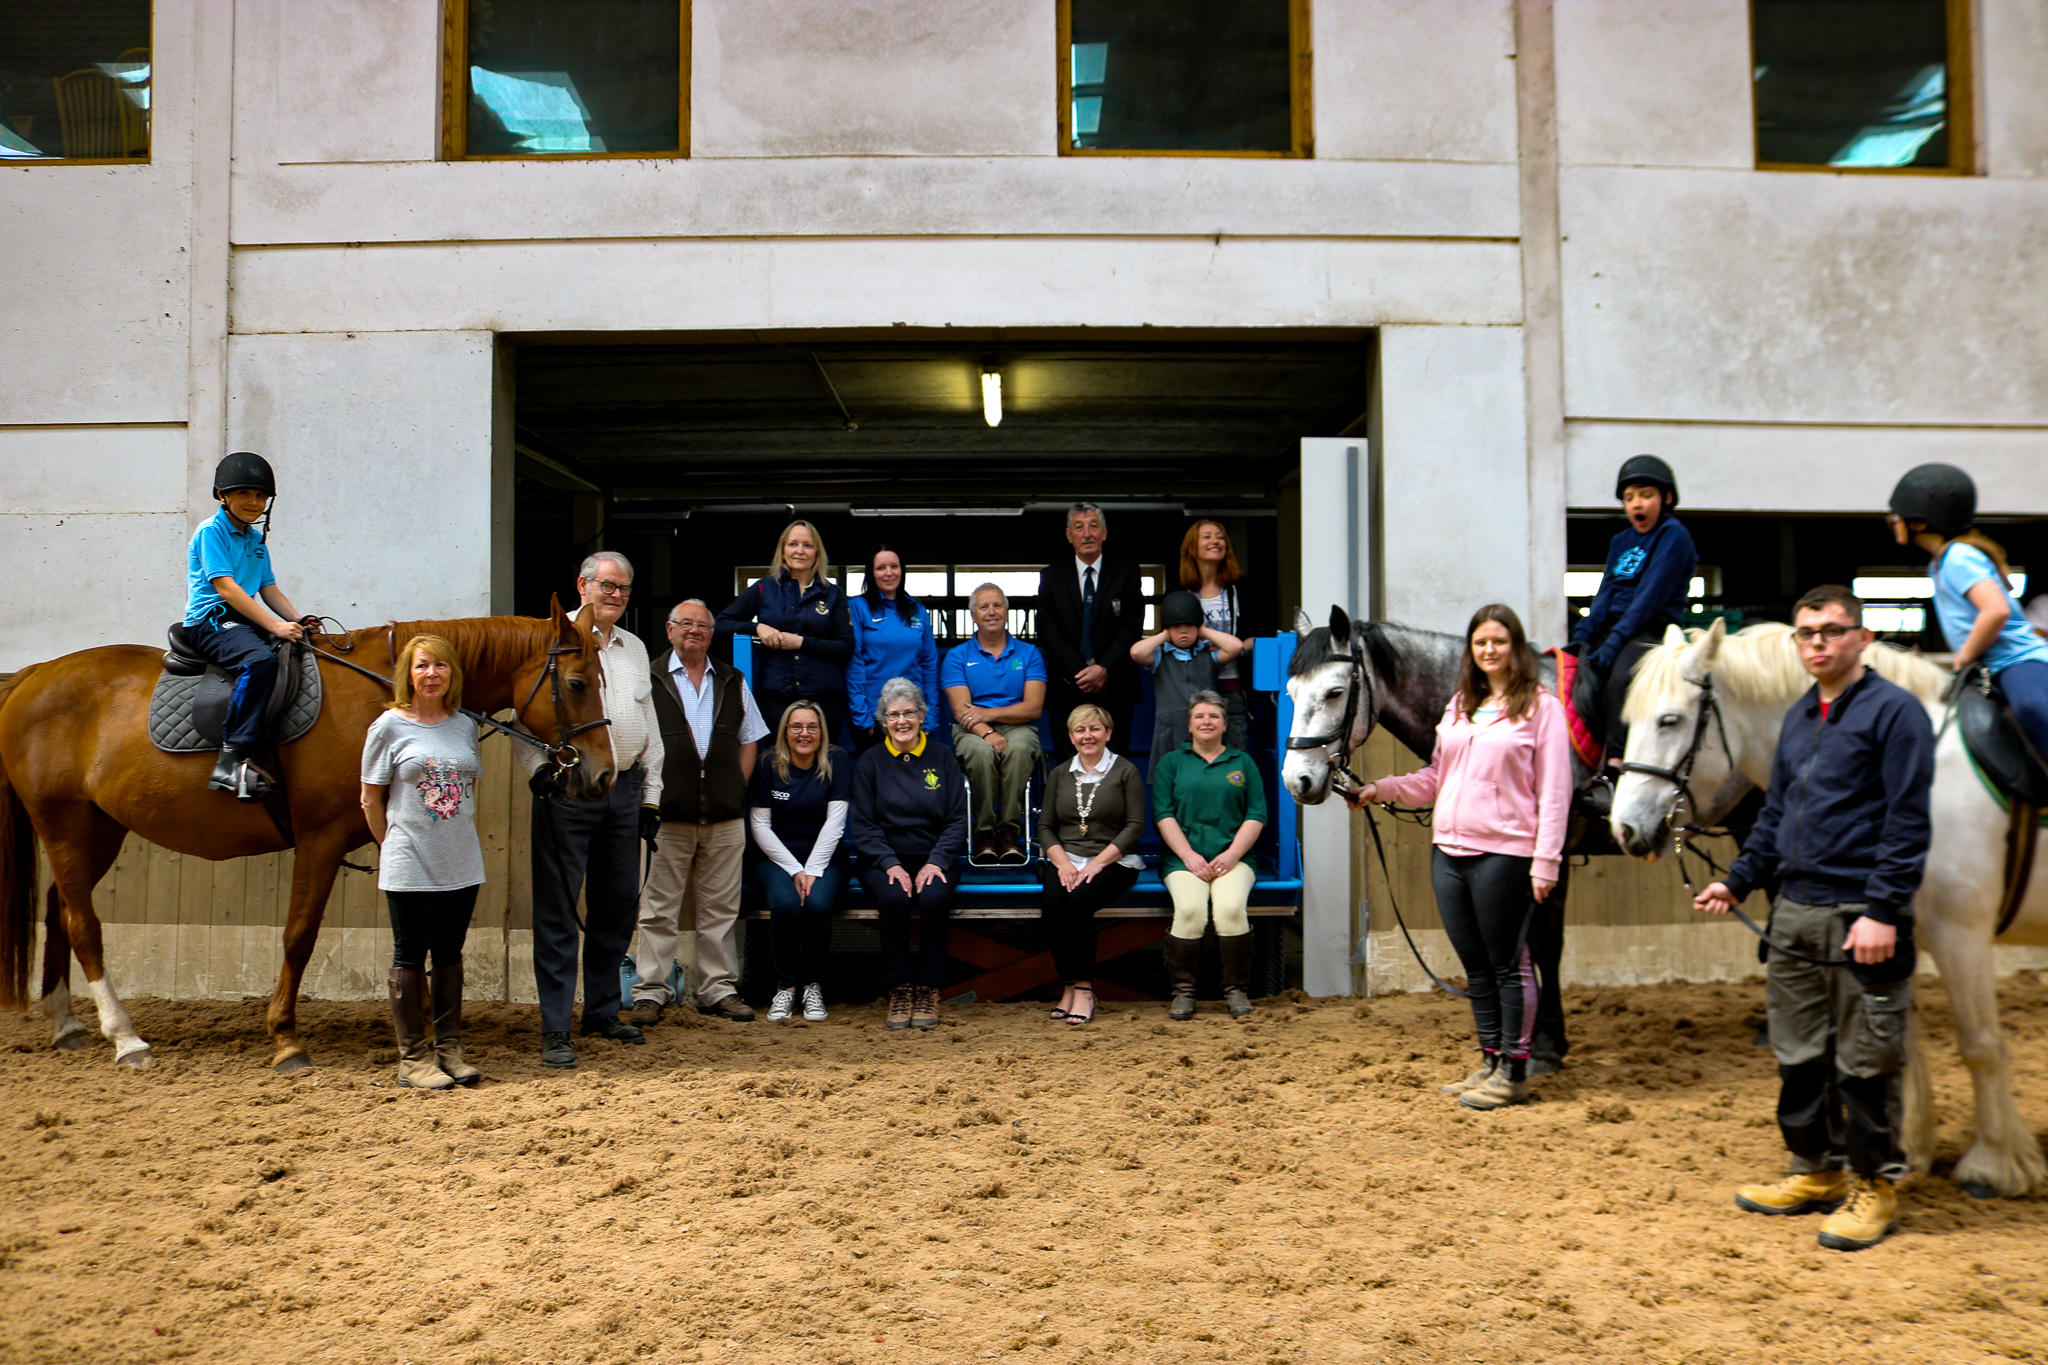 A group image of everyone at the RDA Lift Launch